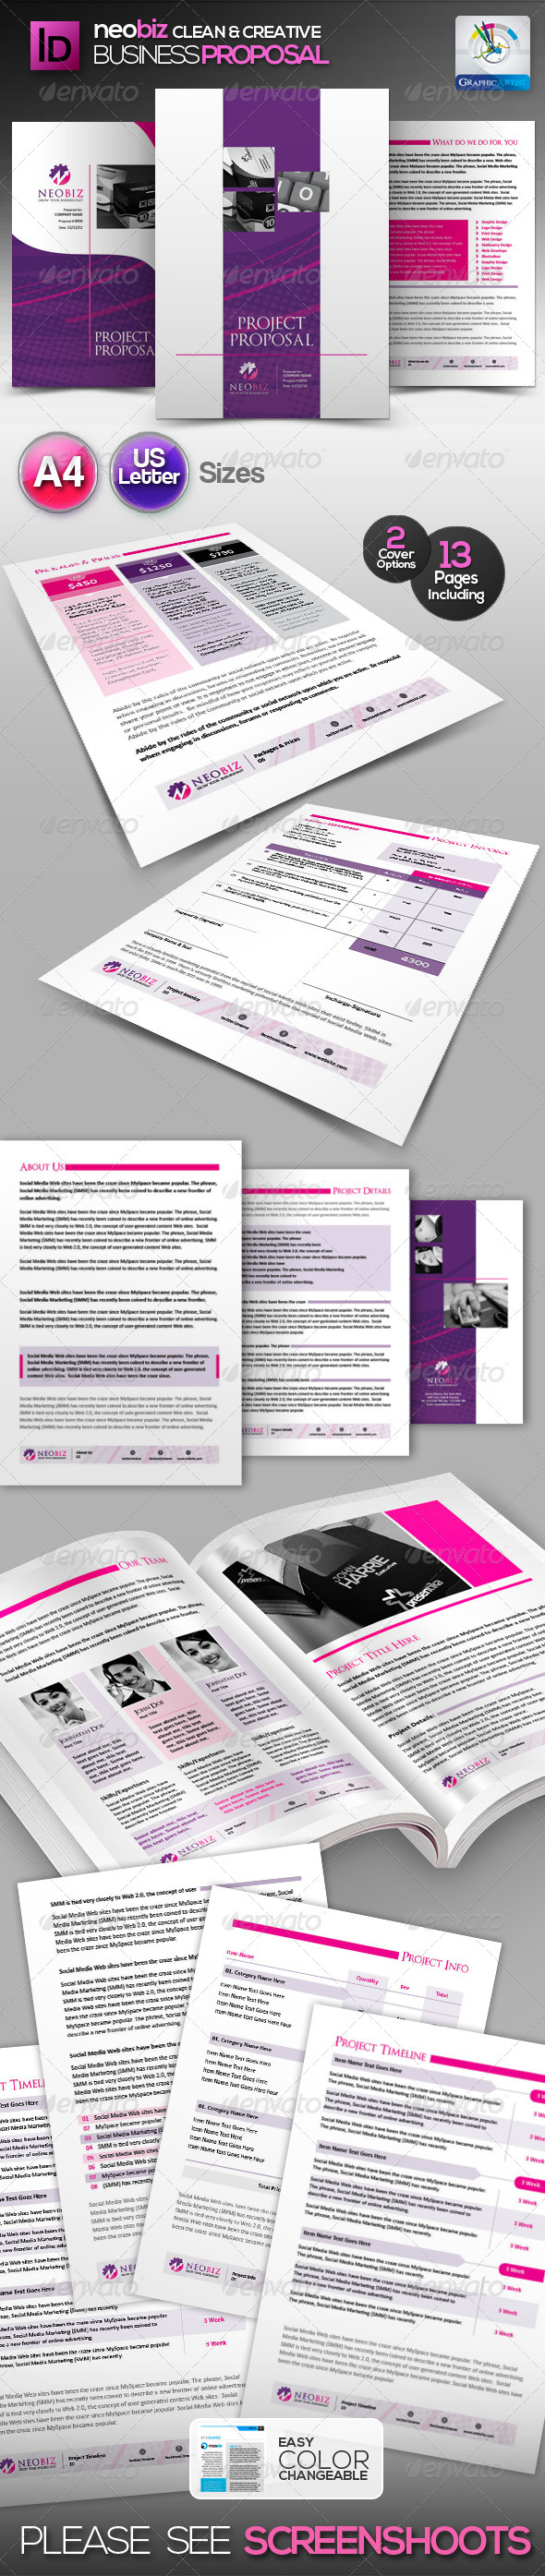 GraphicRiver NeoBiz Clean Generic Proposal 3200898